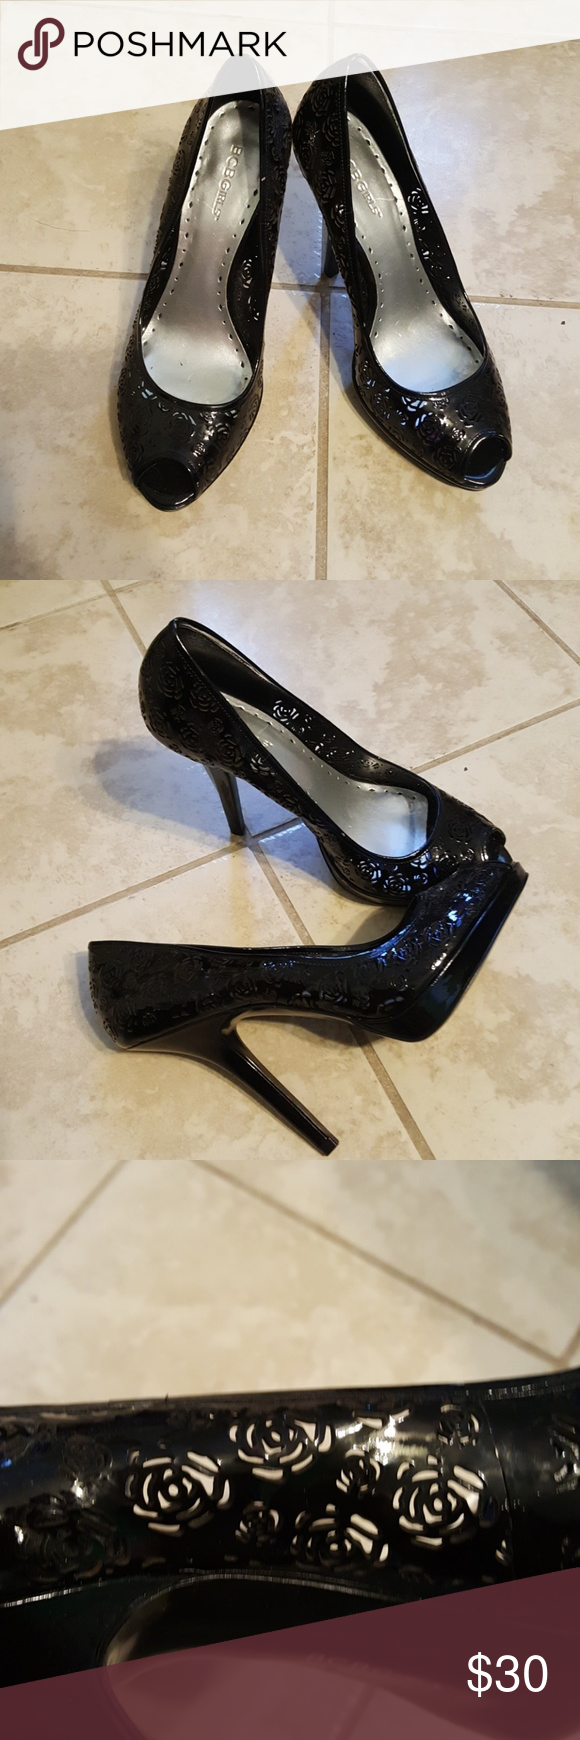 Beautiful black leather heels! New! Never worn. Has beautiful rose cutouts throughout! BCBGirls Shoes Heels